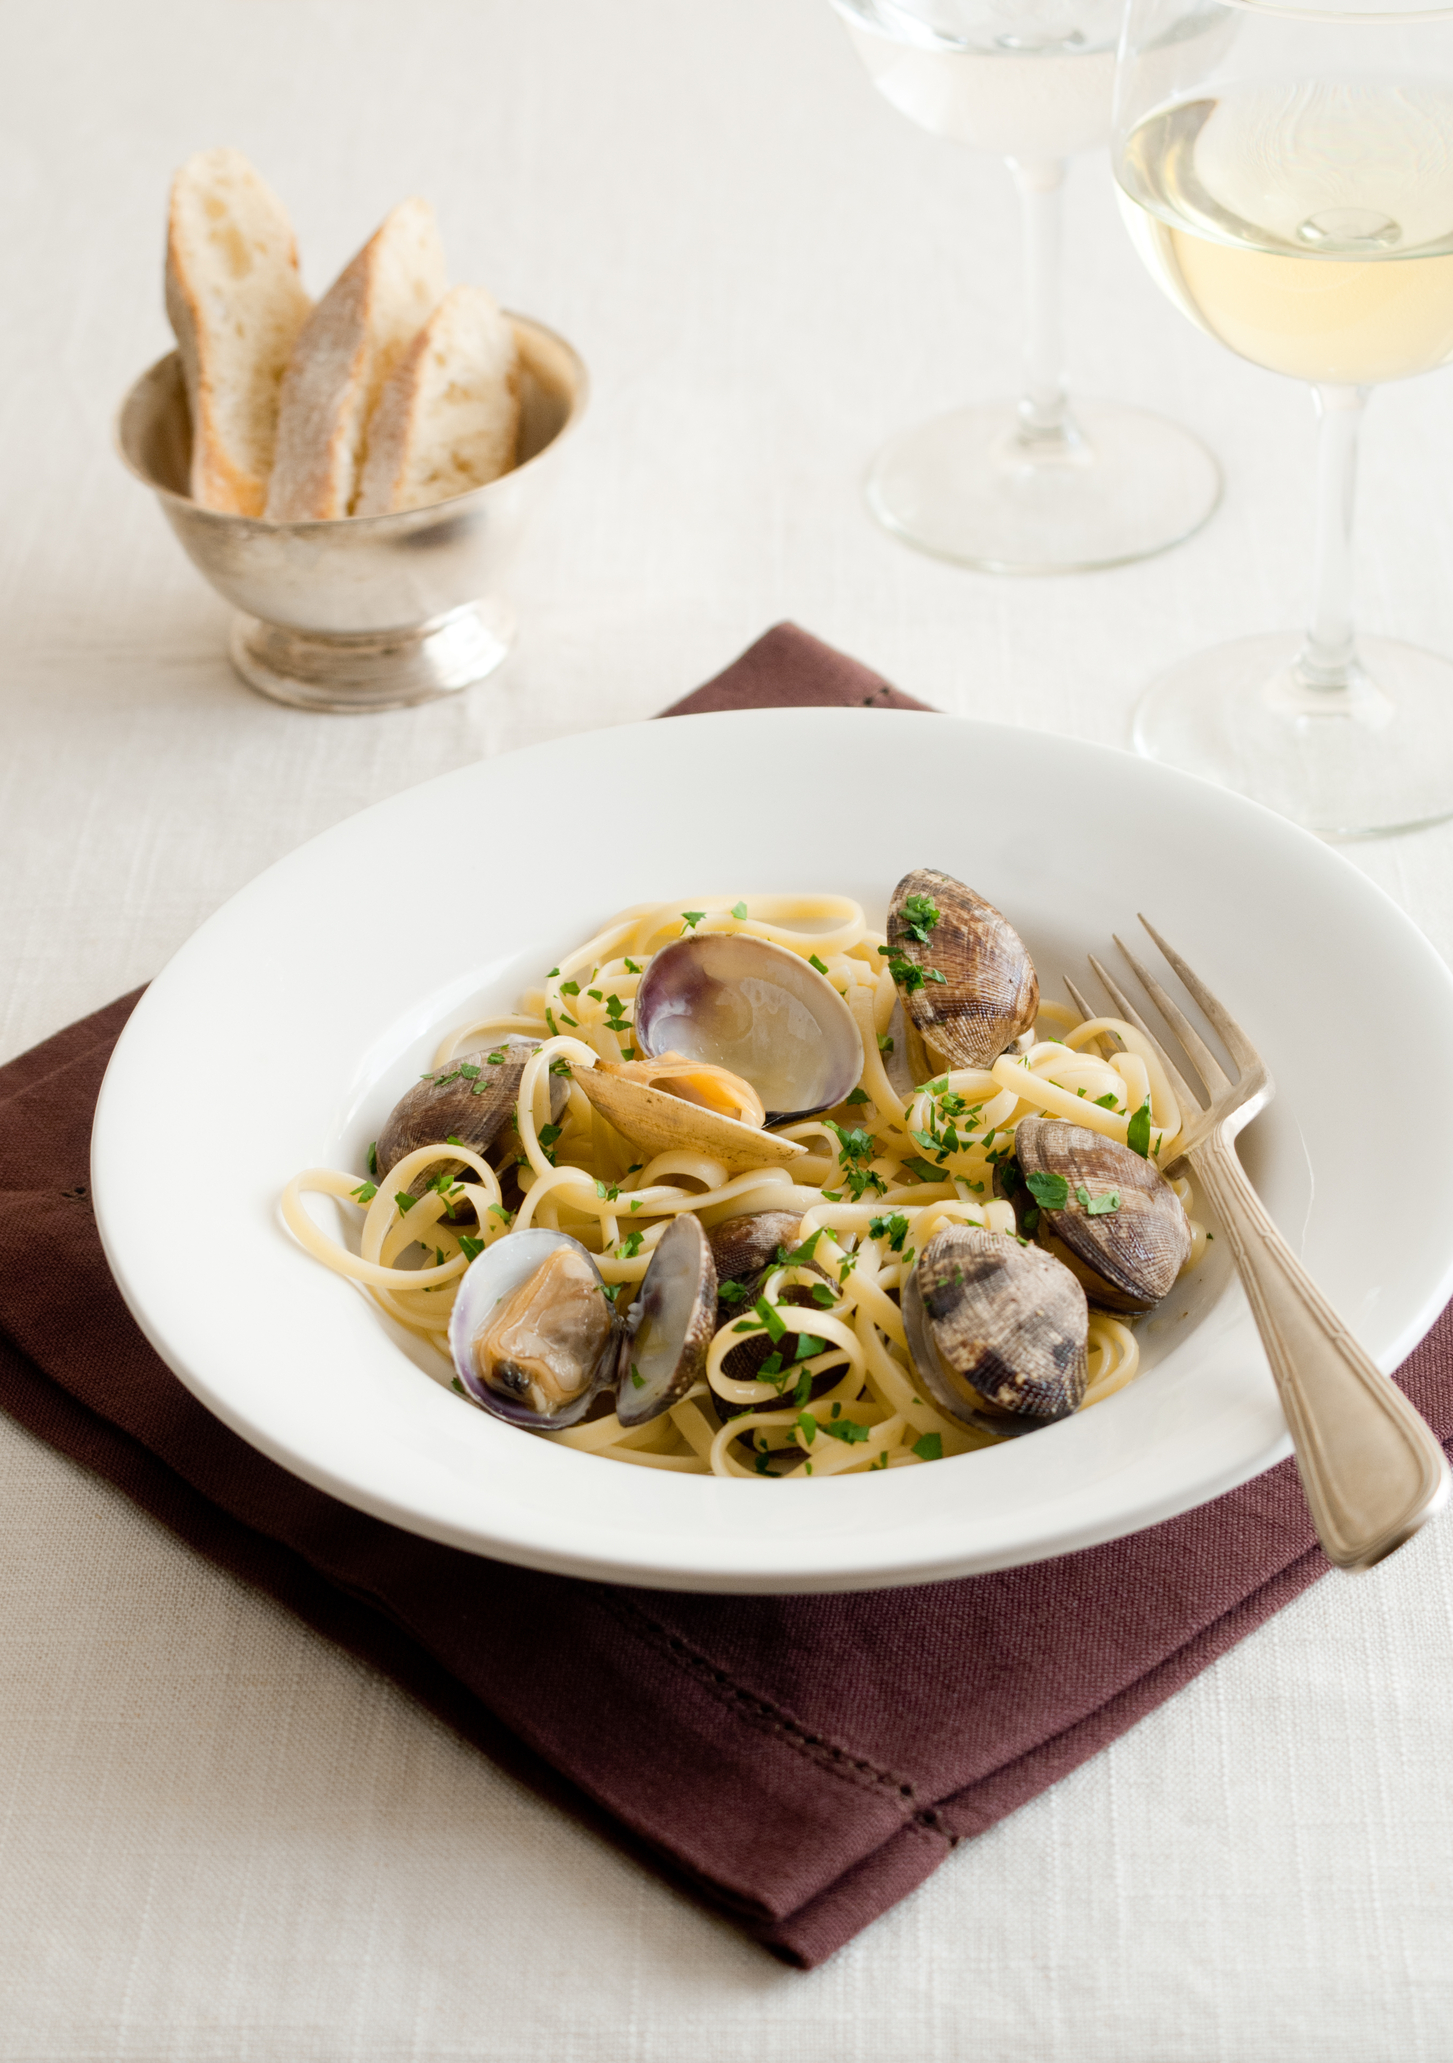 Plate of Linguine with Clams